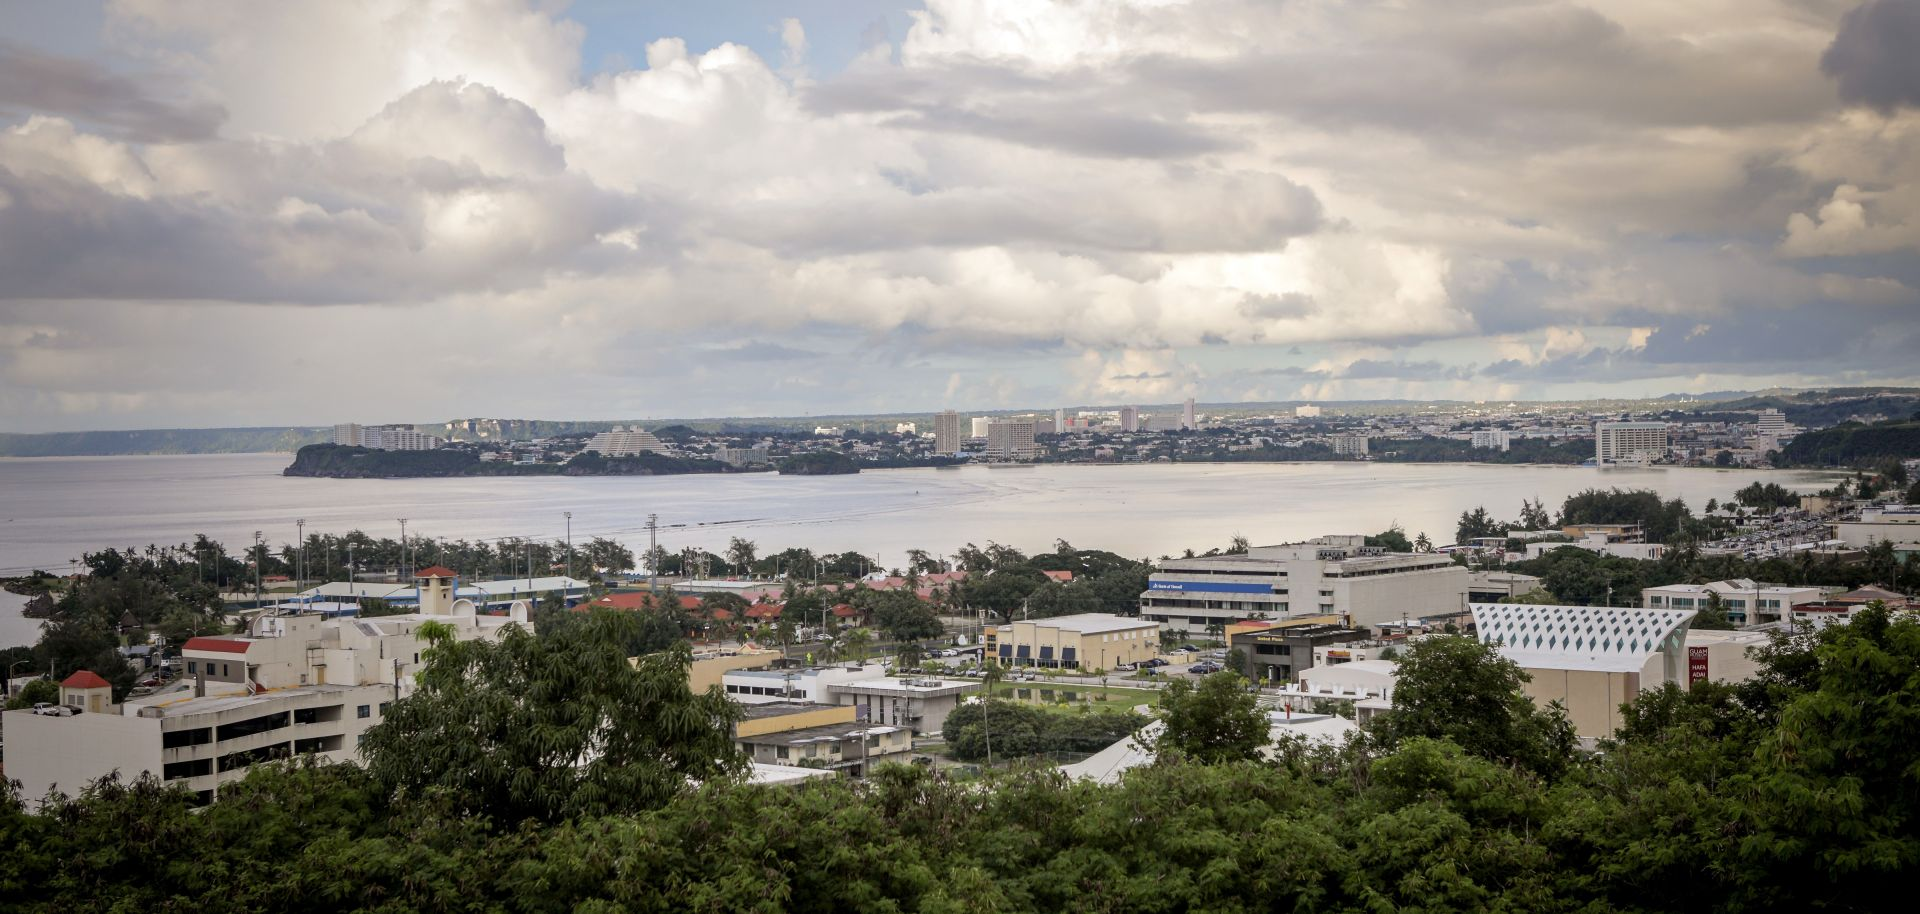 The city of Tamuning is on the island of Guam, a U.S. territory in the Western Pacific.